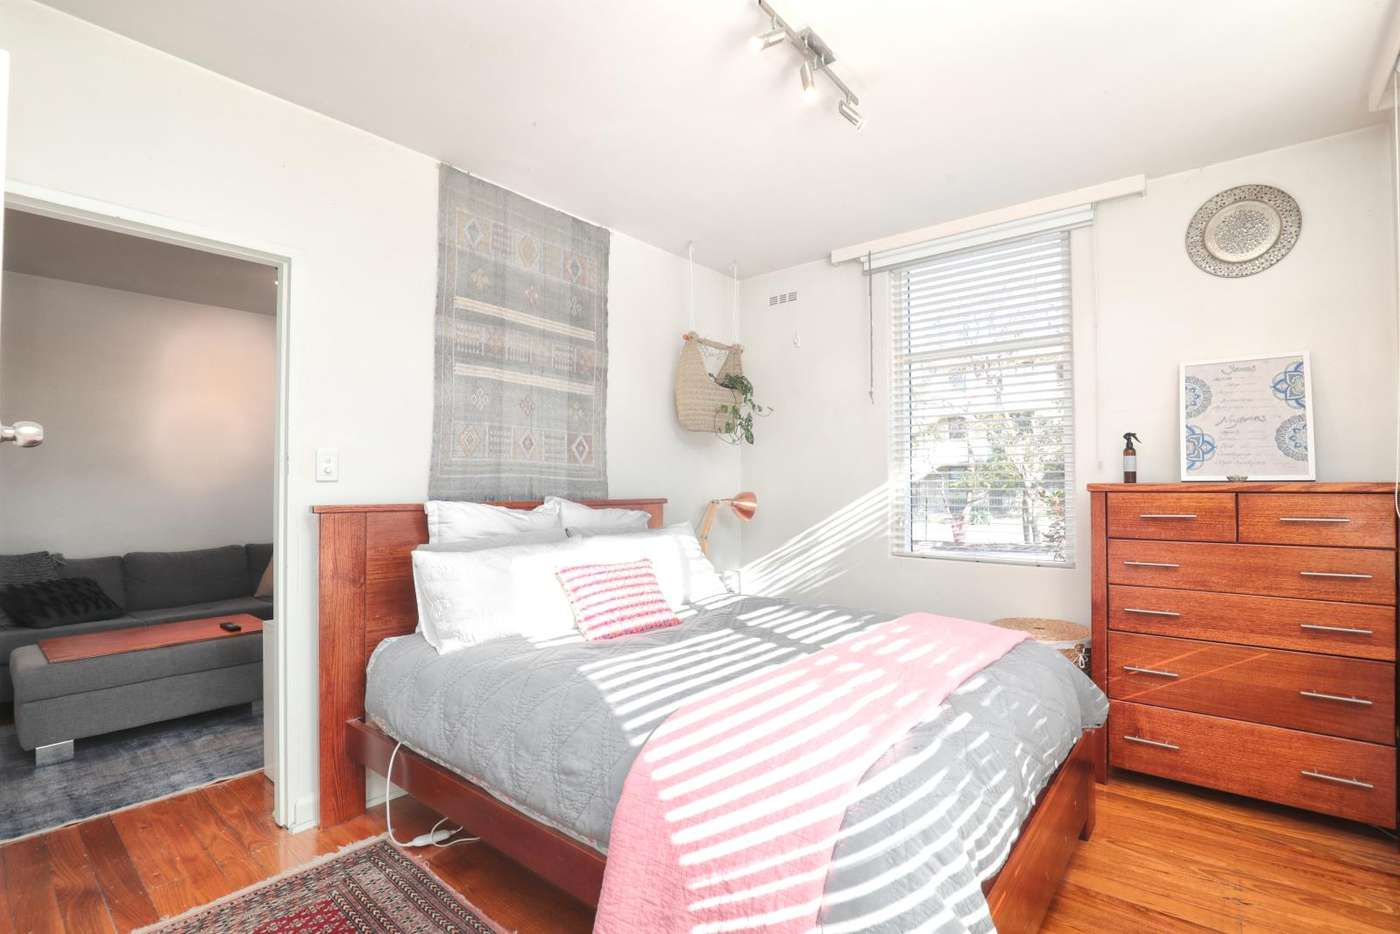 Sixth view of Homely unit listing, 34/5-9 Fulton Street, St Kilda East VIC 3183